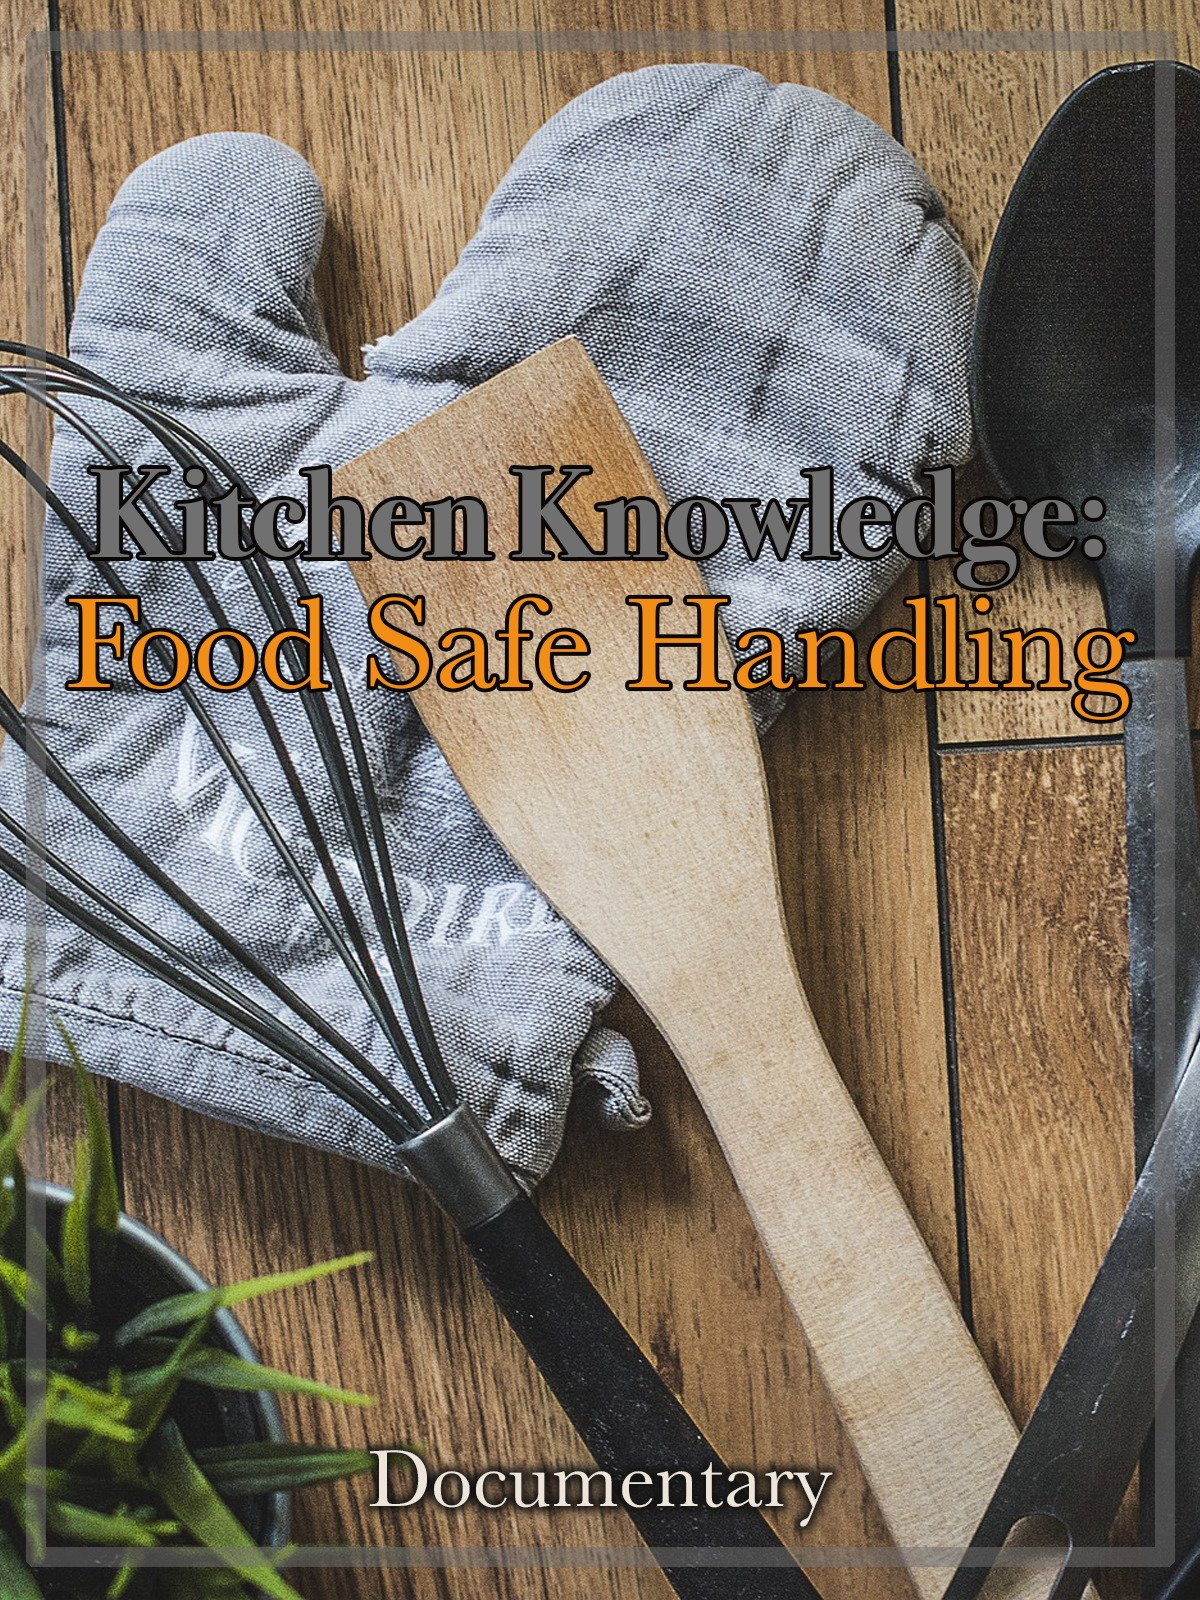 Kitchen Knowledge Food Safe Handling Documentary